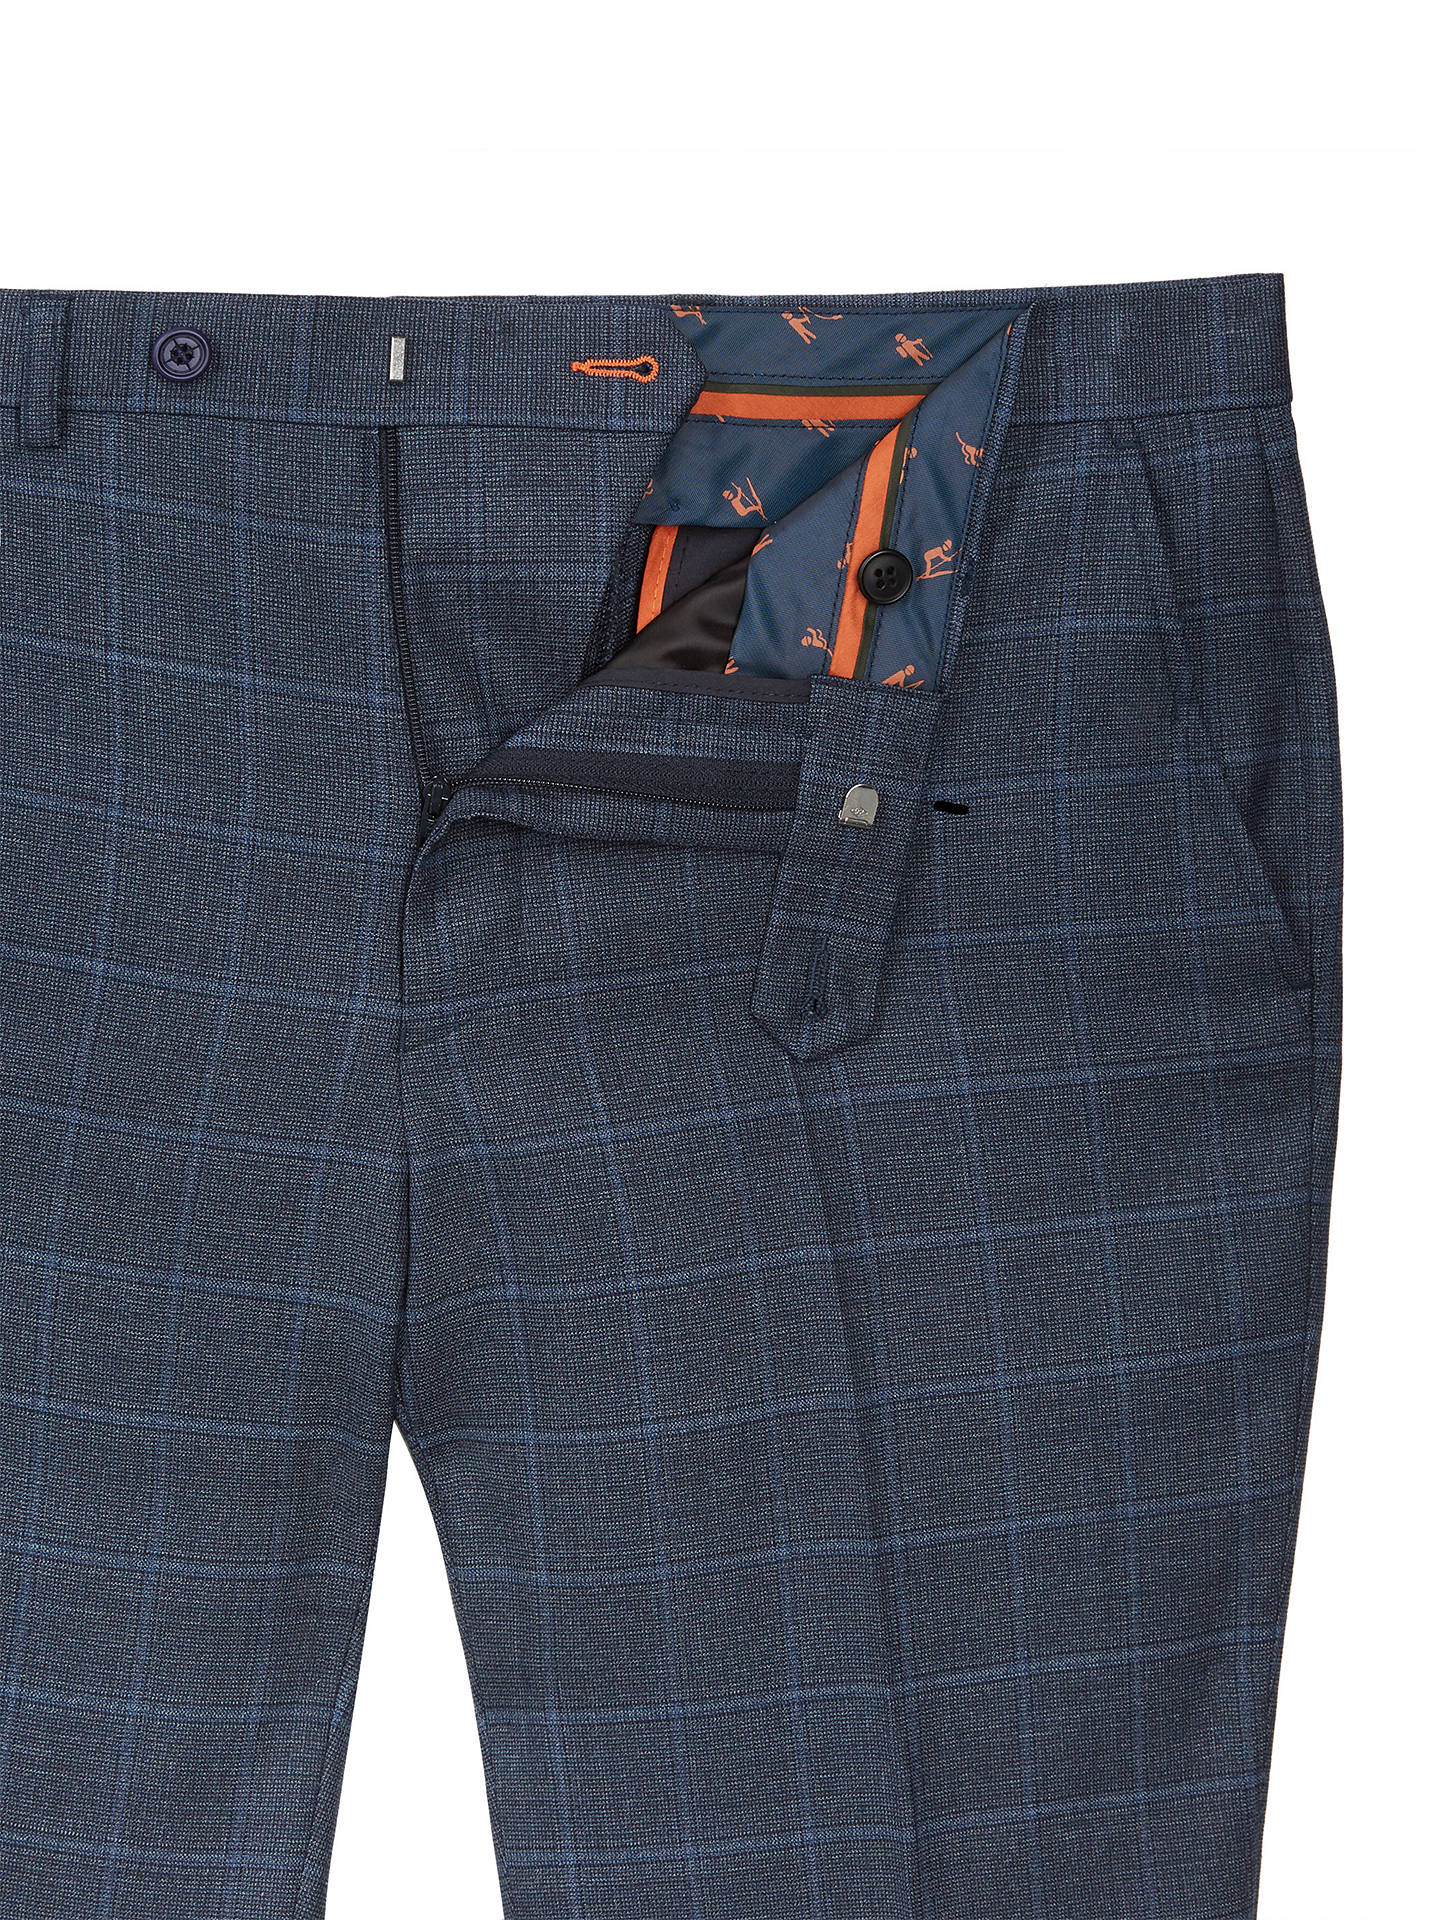 Buy Ted Baker Comfort Check Tailored Suit Trousers, Blue, 32S Online at johnlewis.com